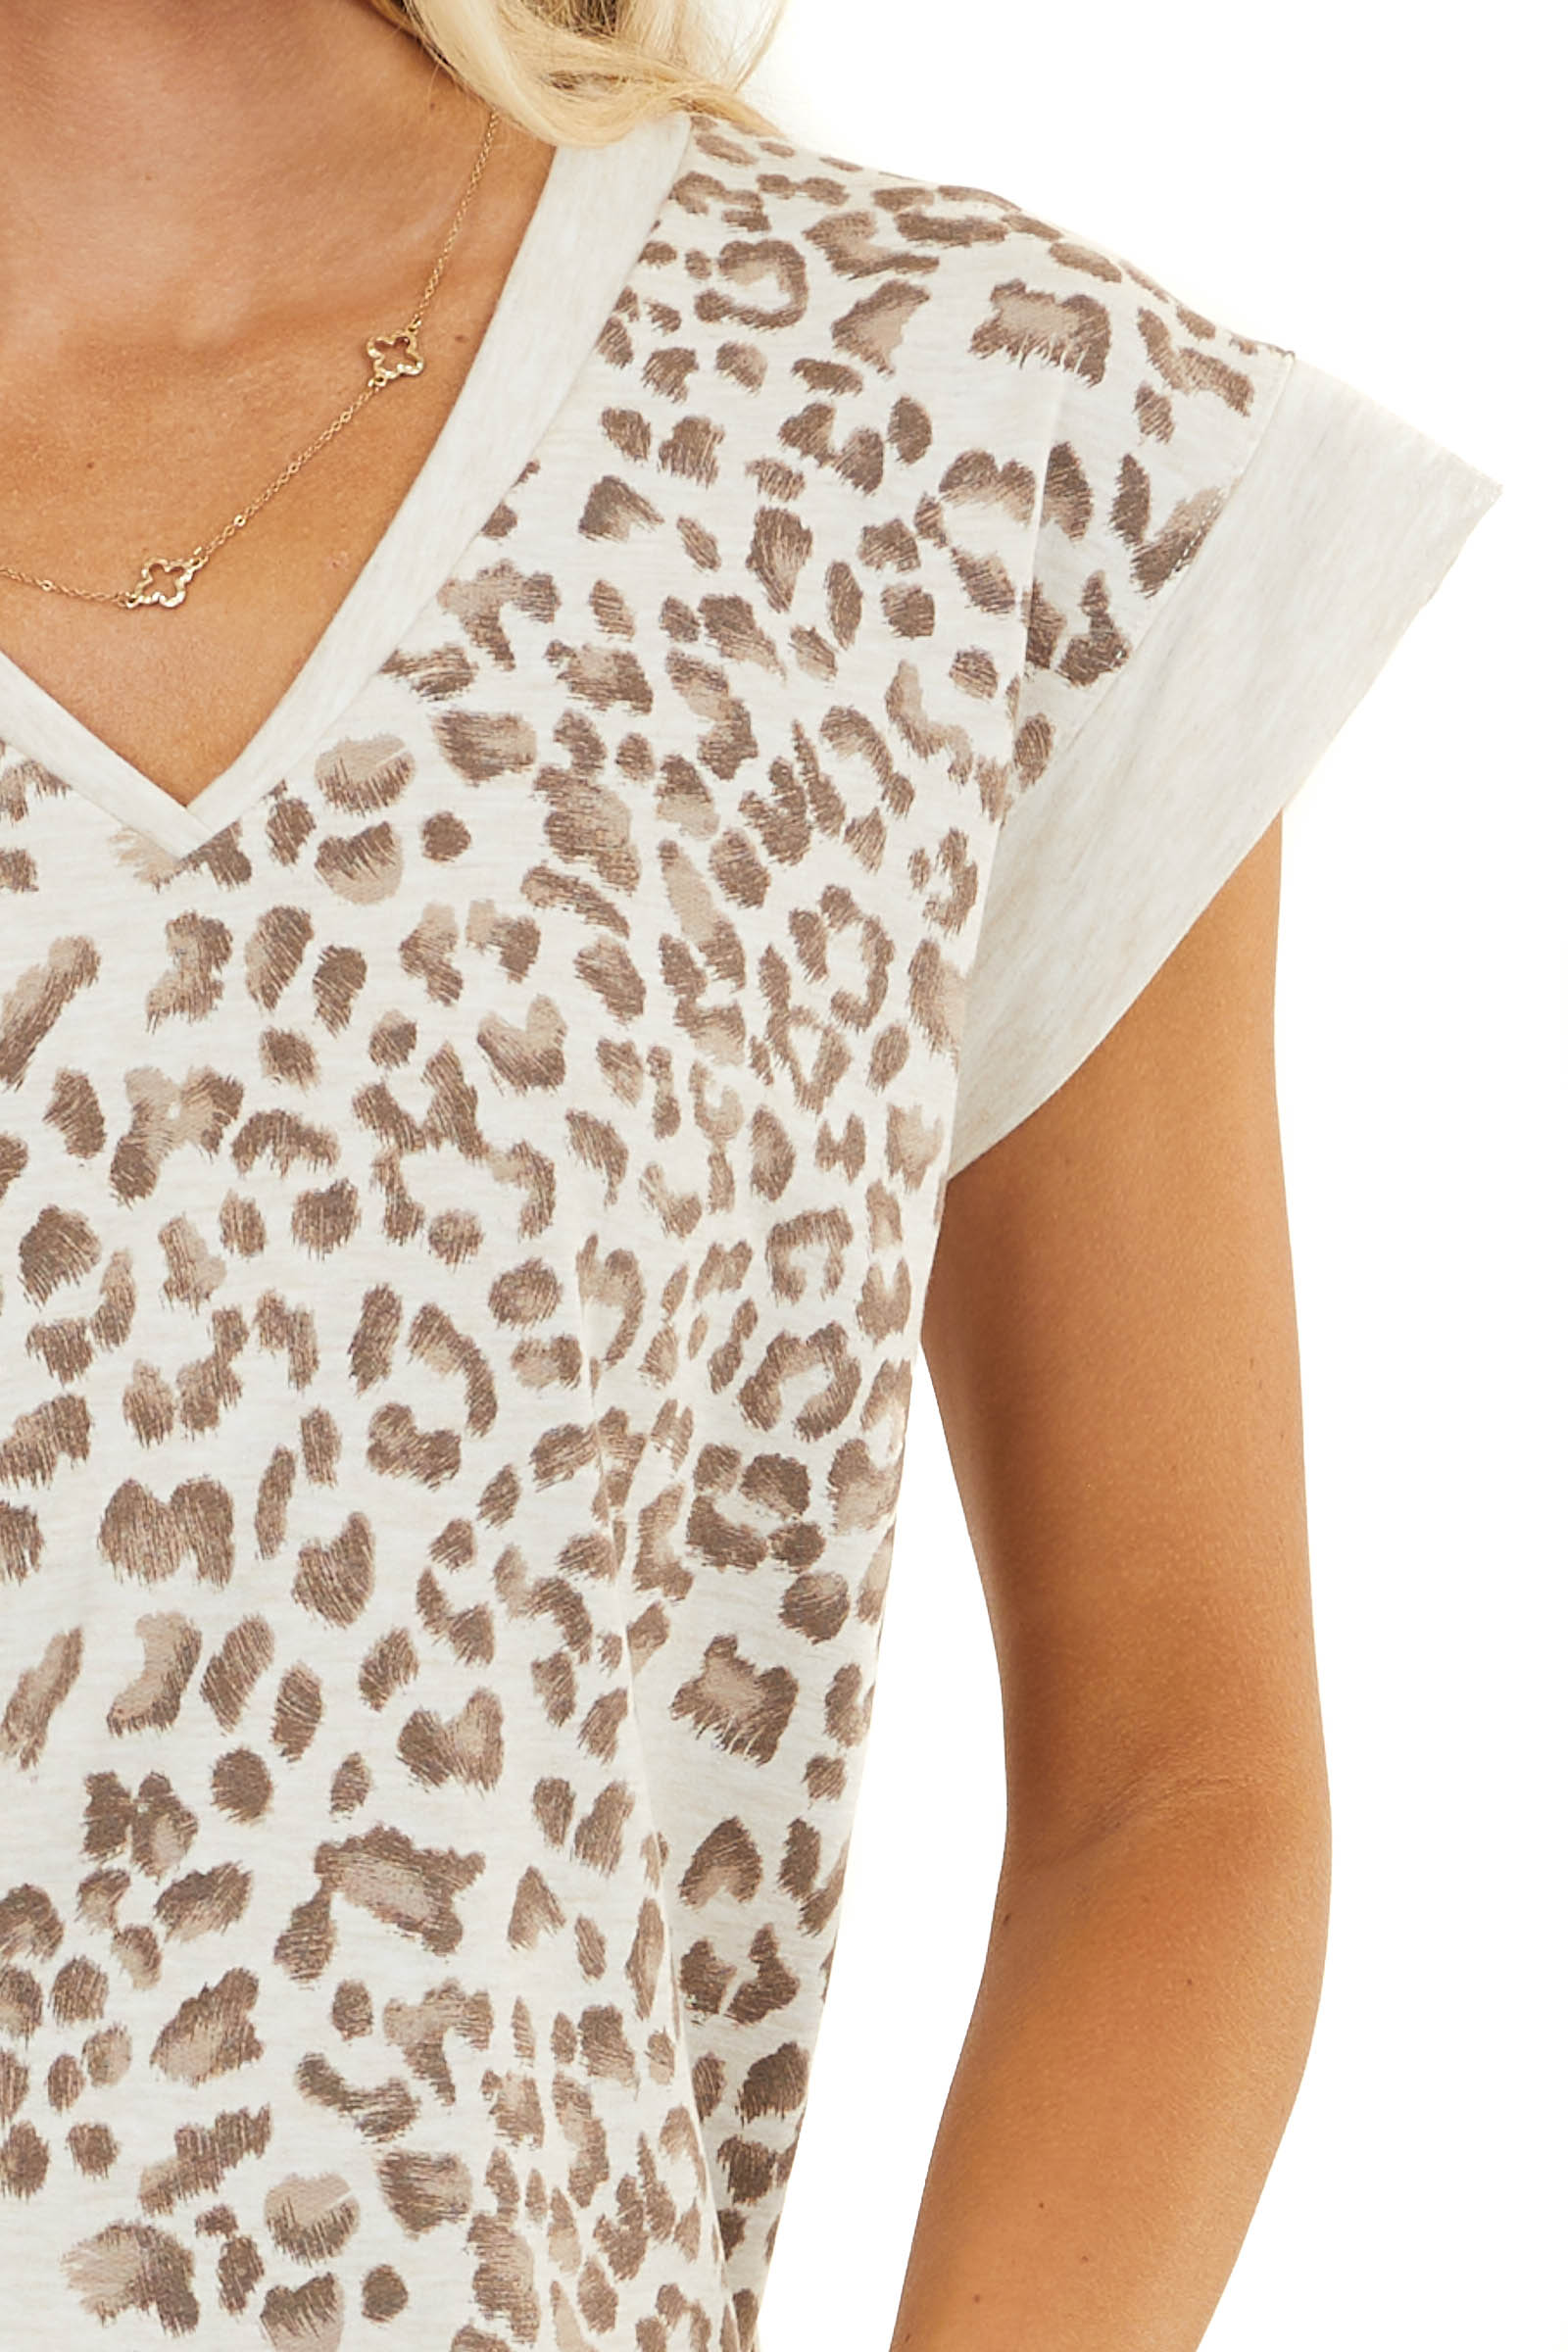 Cream Leopard Top with Contrasting V Neck and Short Sleeves